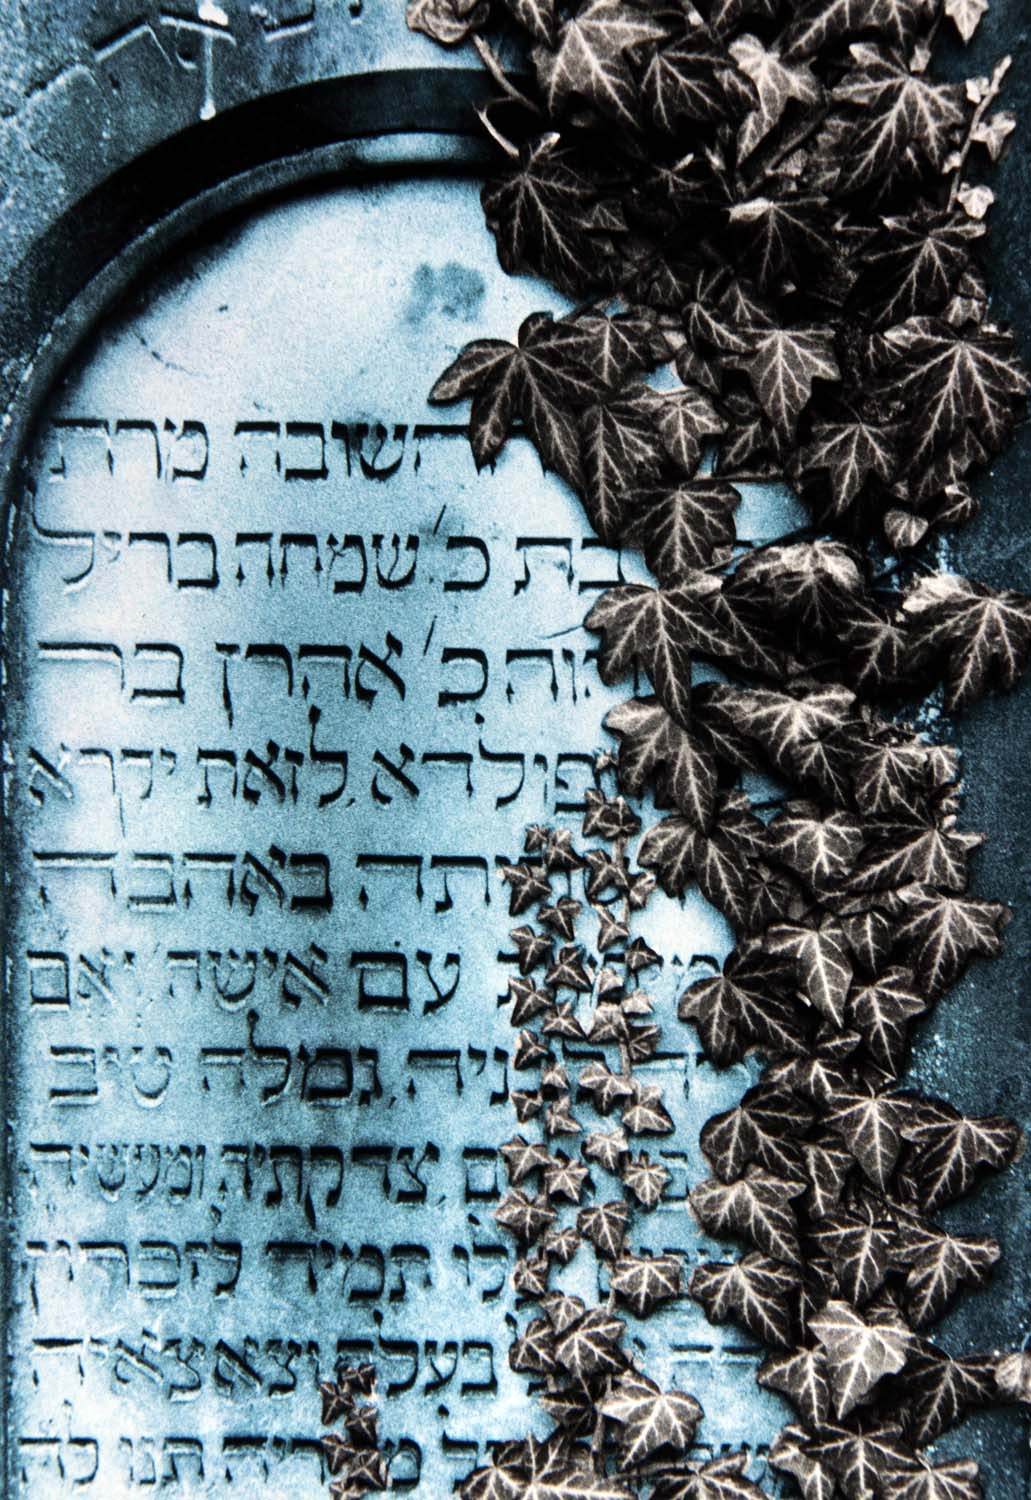 Jewish,Hebrew,inscription,gravestone,grave,stone,germany,Jew,Jewry,Isreal,writing,yard,graveyard,poisen,ivy,overgrown,over,grown,toned,black,white,blue,cyan,dead,deceased,synagoge,synagogue,church,Semitic,language,classical,classical Hebrew,Judaism,RIP,rest,peace,memorial,memorium,gave,men,women,cemetary,cemetery,this photo rocks!,B/W,partial,mixed,color,hotpics,hotpic,hotpick,hotpicks,graves,tomb,tombs,cemetario,muchacha,femenina,de,la,mujer,se\u00f1ora,lady,female,woman,girl,\u5973\u6027\u30e1\u30b9\u306e\u5973\u6027\u306e\u5973\u306e\u5b50,\u592b\u4eba\u5973\u6027\u5987\u5973\u5973\u5b69,fille,f\u00e9minine,femme,dame,hotpix!